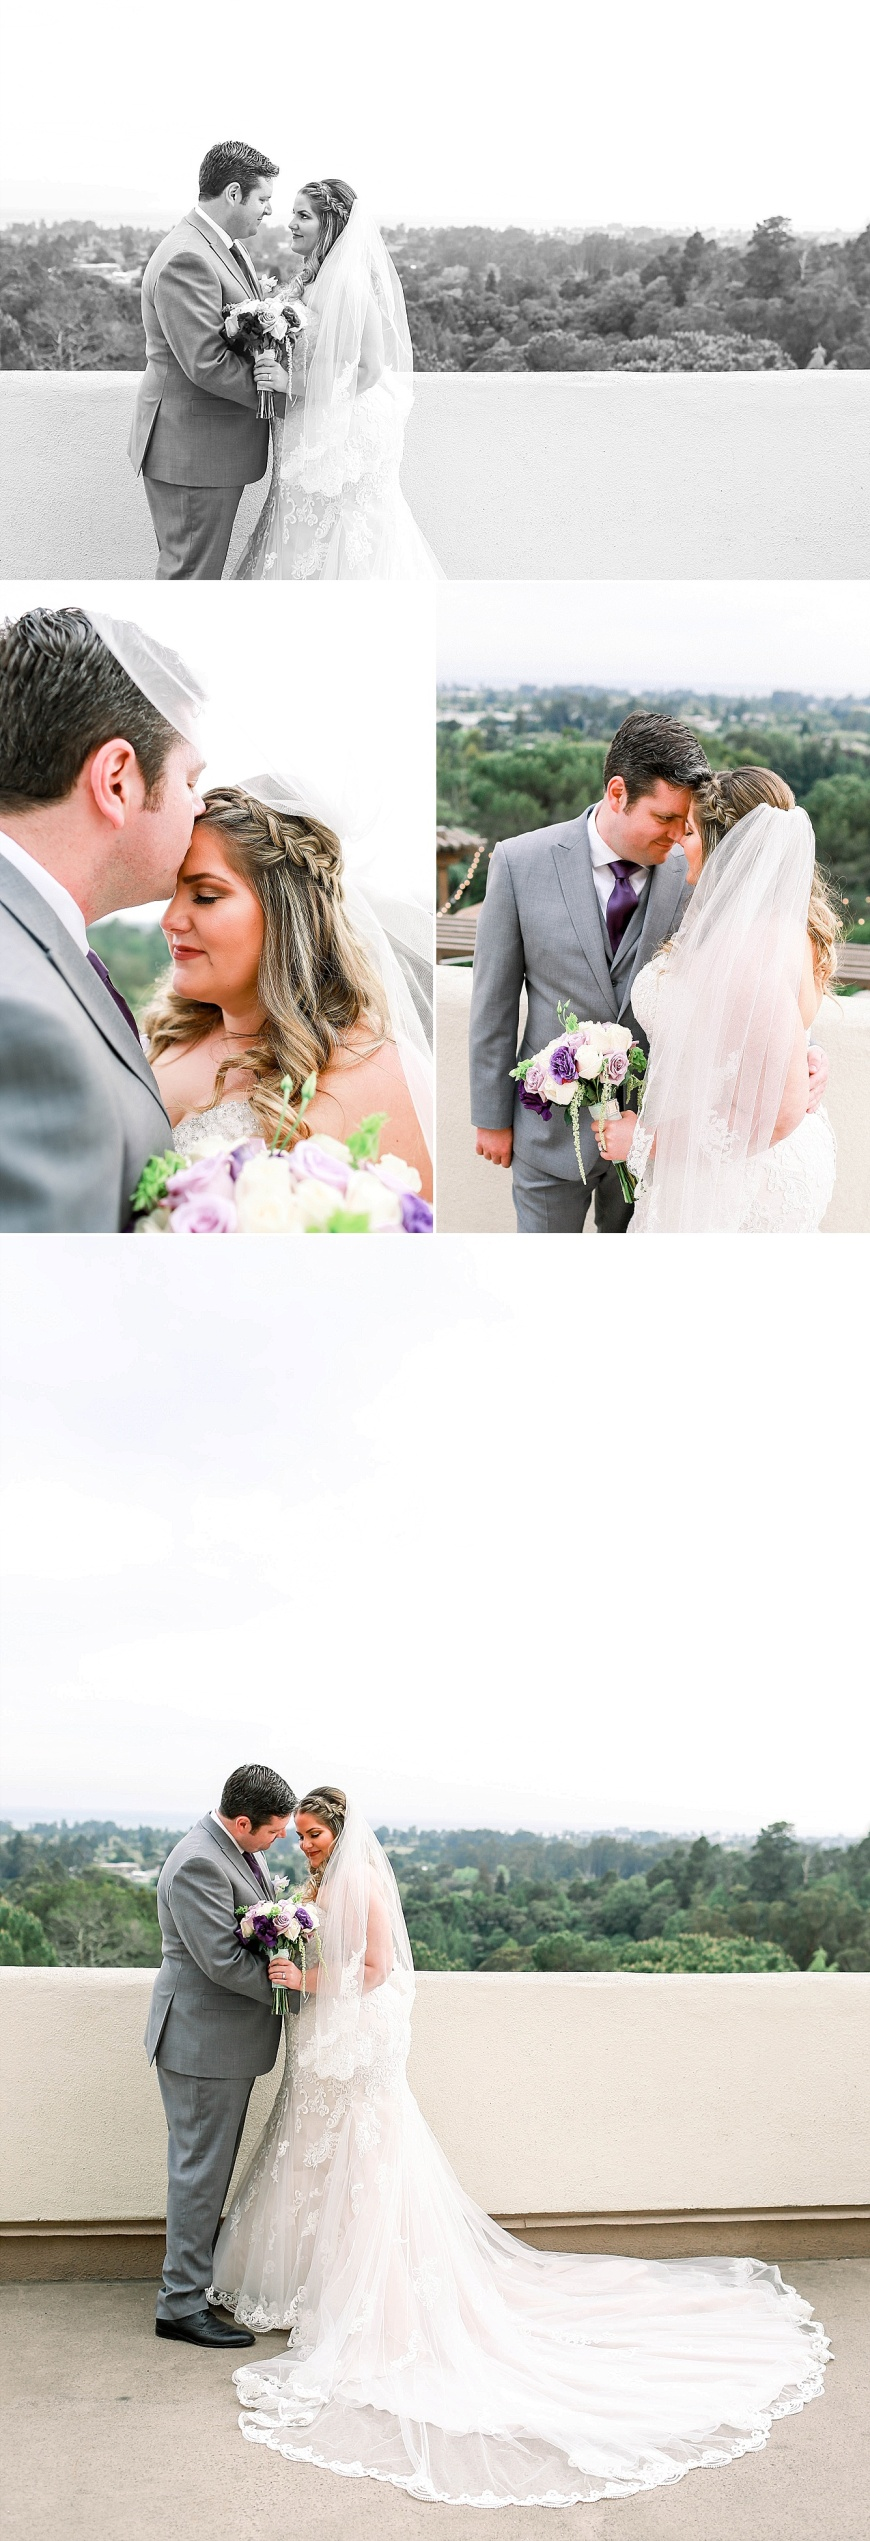 Chaminade-Resort-Santa-Cruz-Wedding Photographer_1055.jpg